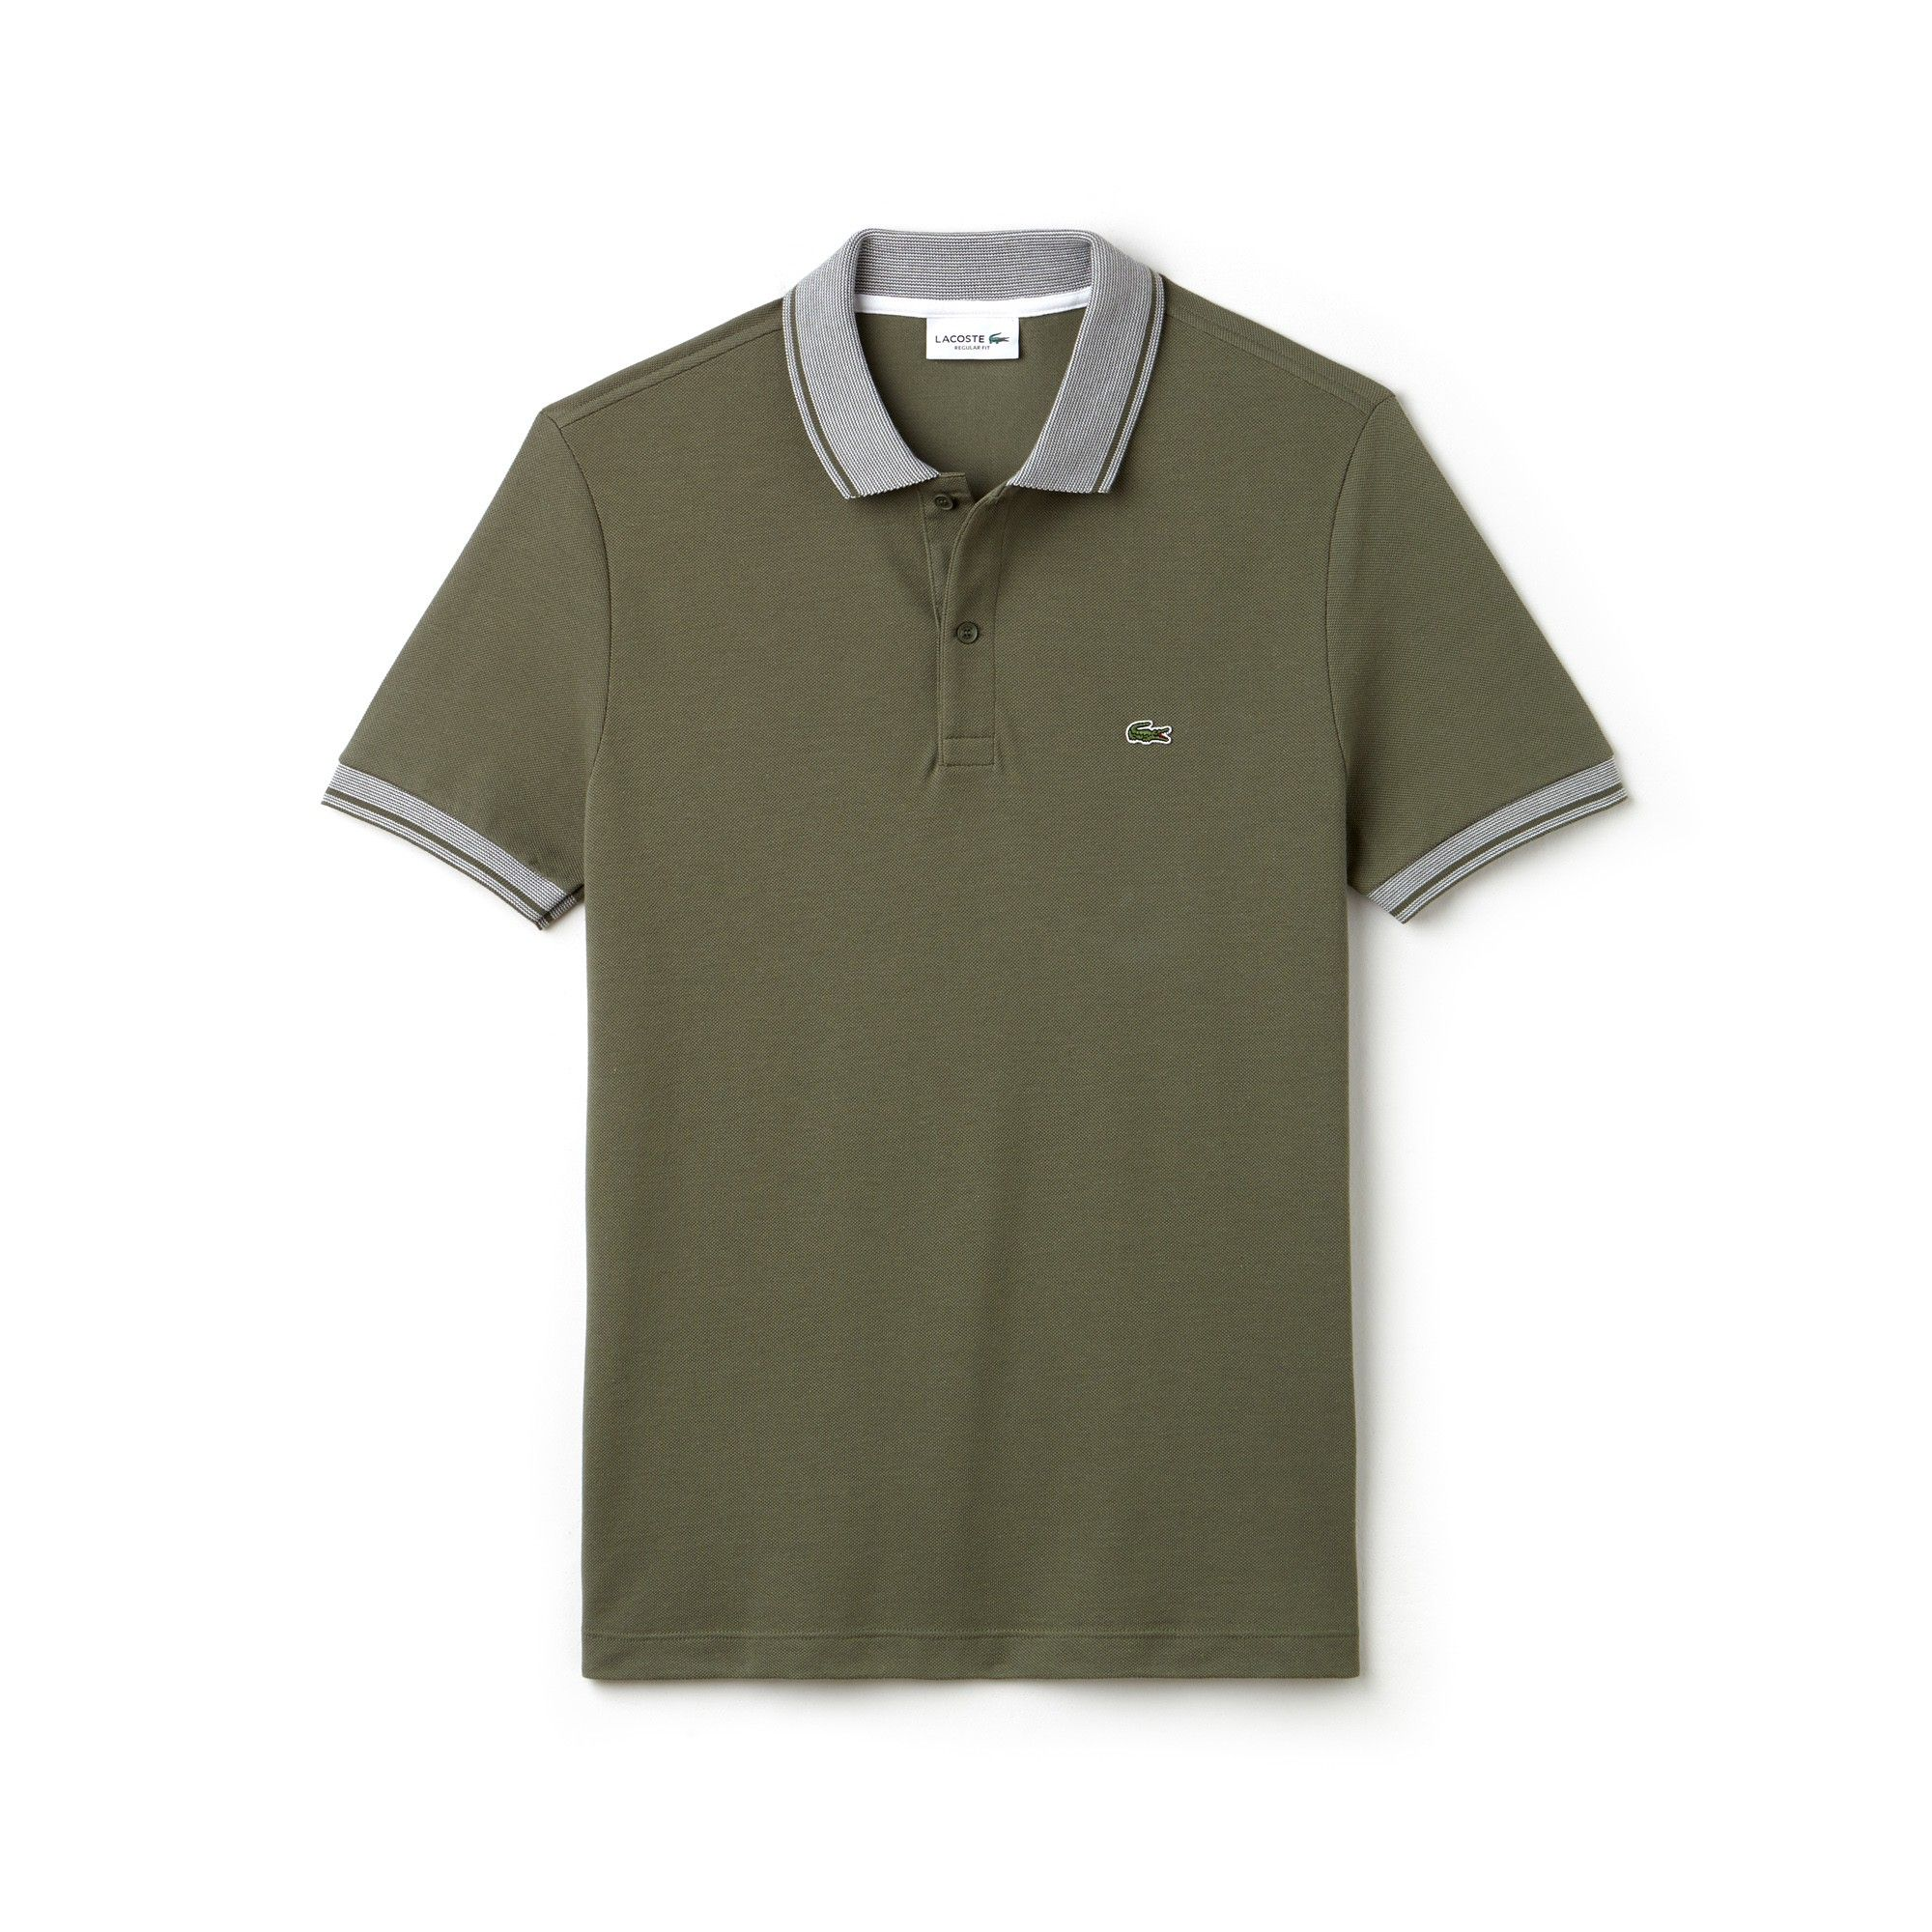 6b7a2c433b95 Lacoste Men s Regular Fit Piped Piqué Polo - Electric White Xxl 7